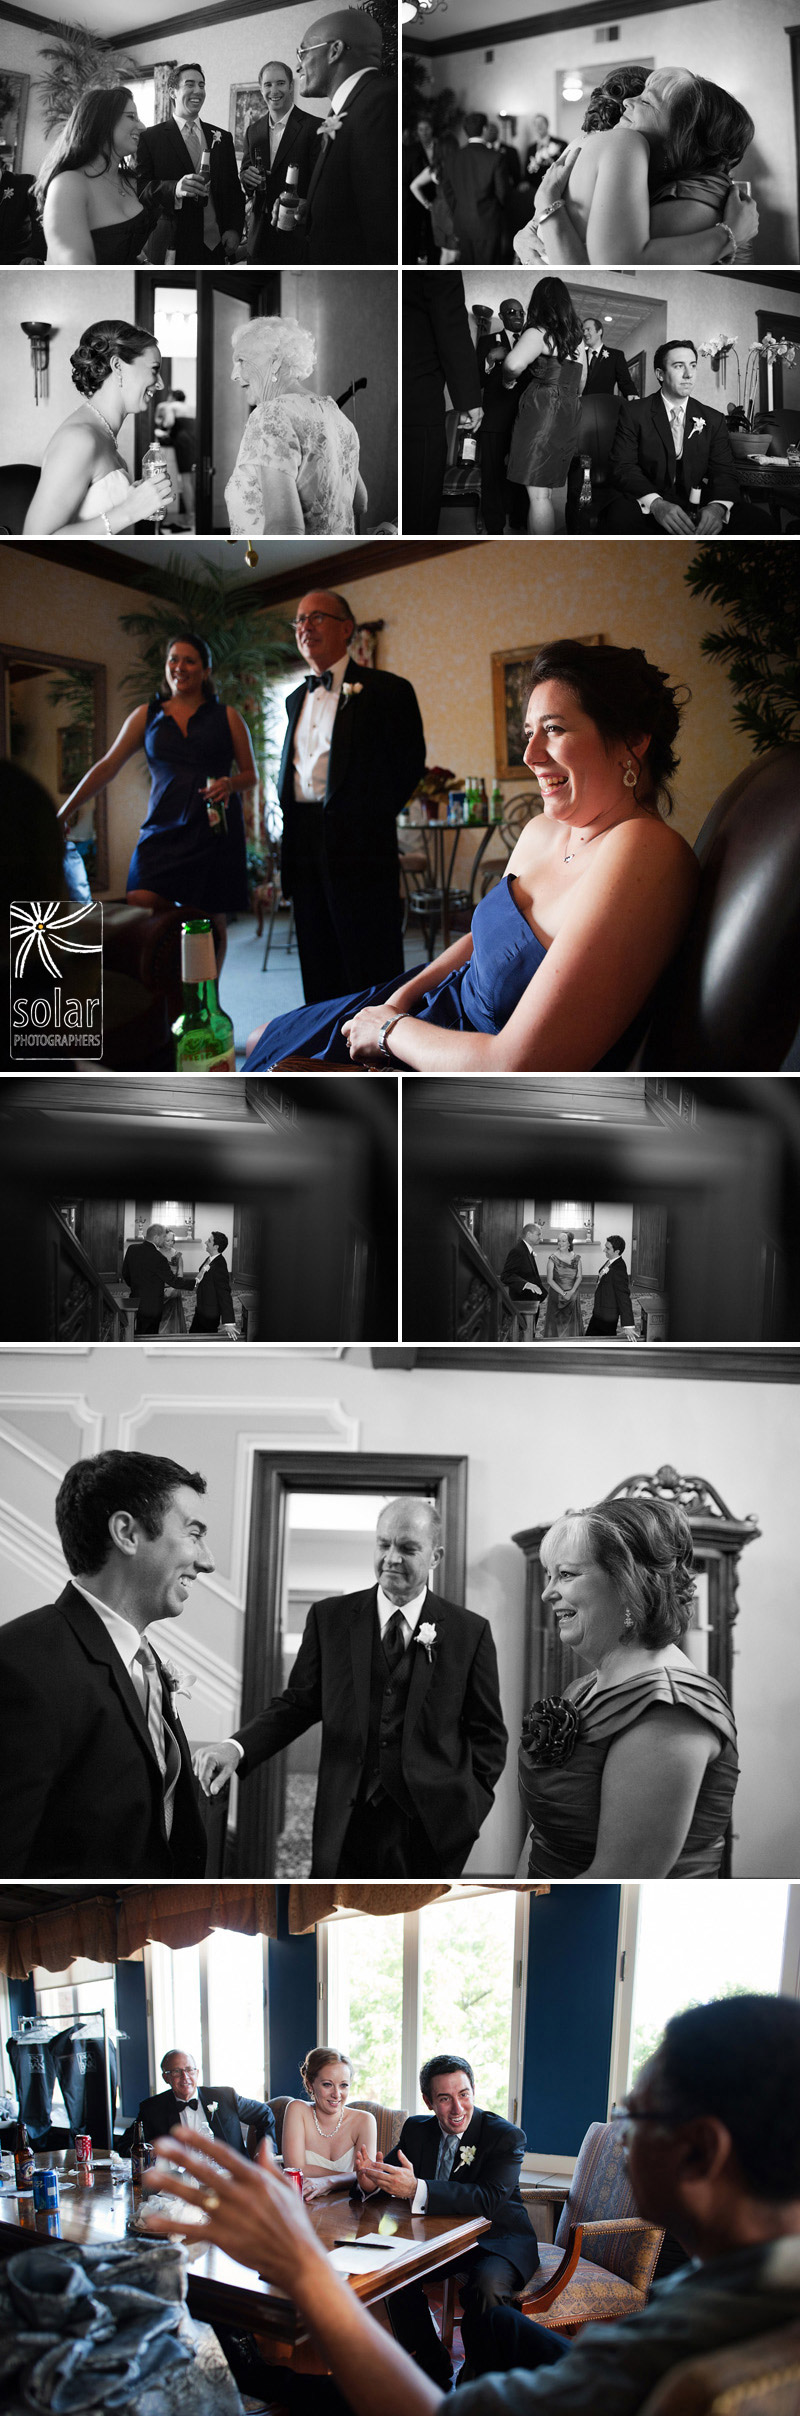 Fun candid wedding pictures.